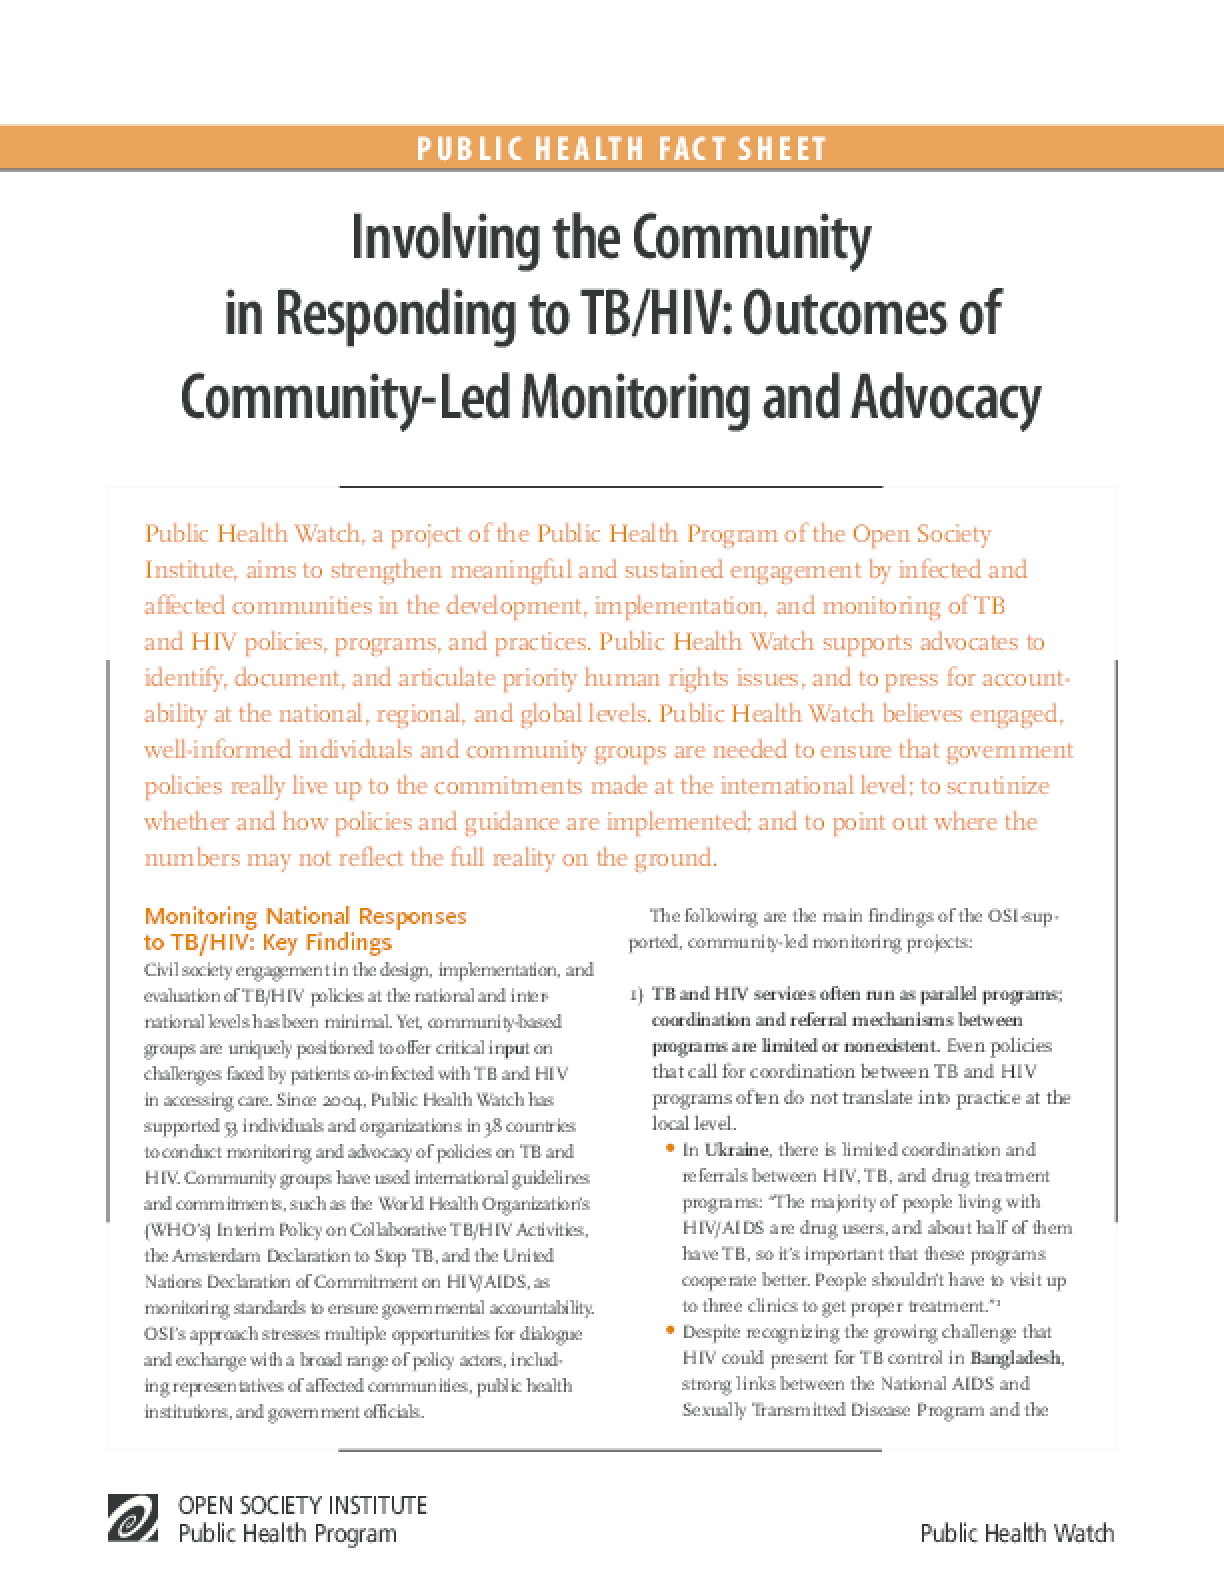 Involving the Community in Responding to TB/HIV: Outcomes of Community-Led Monitoring and Advocacy